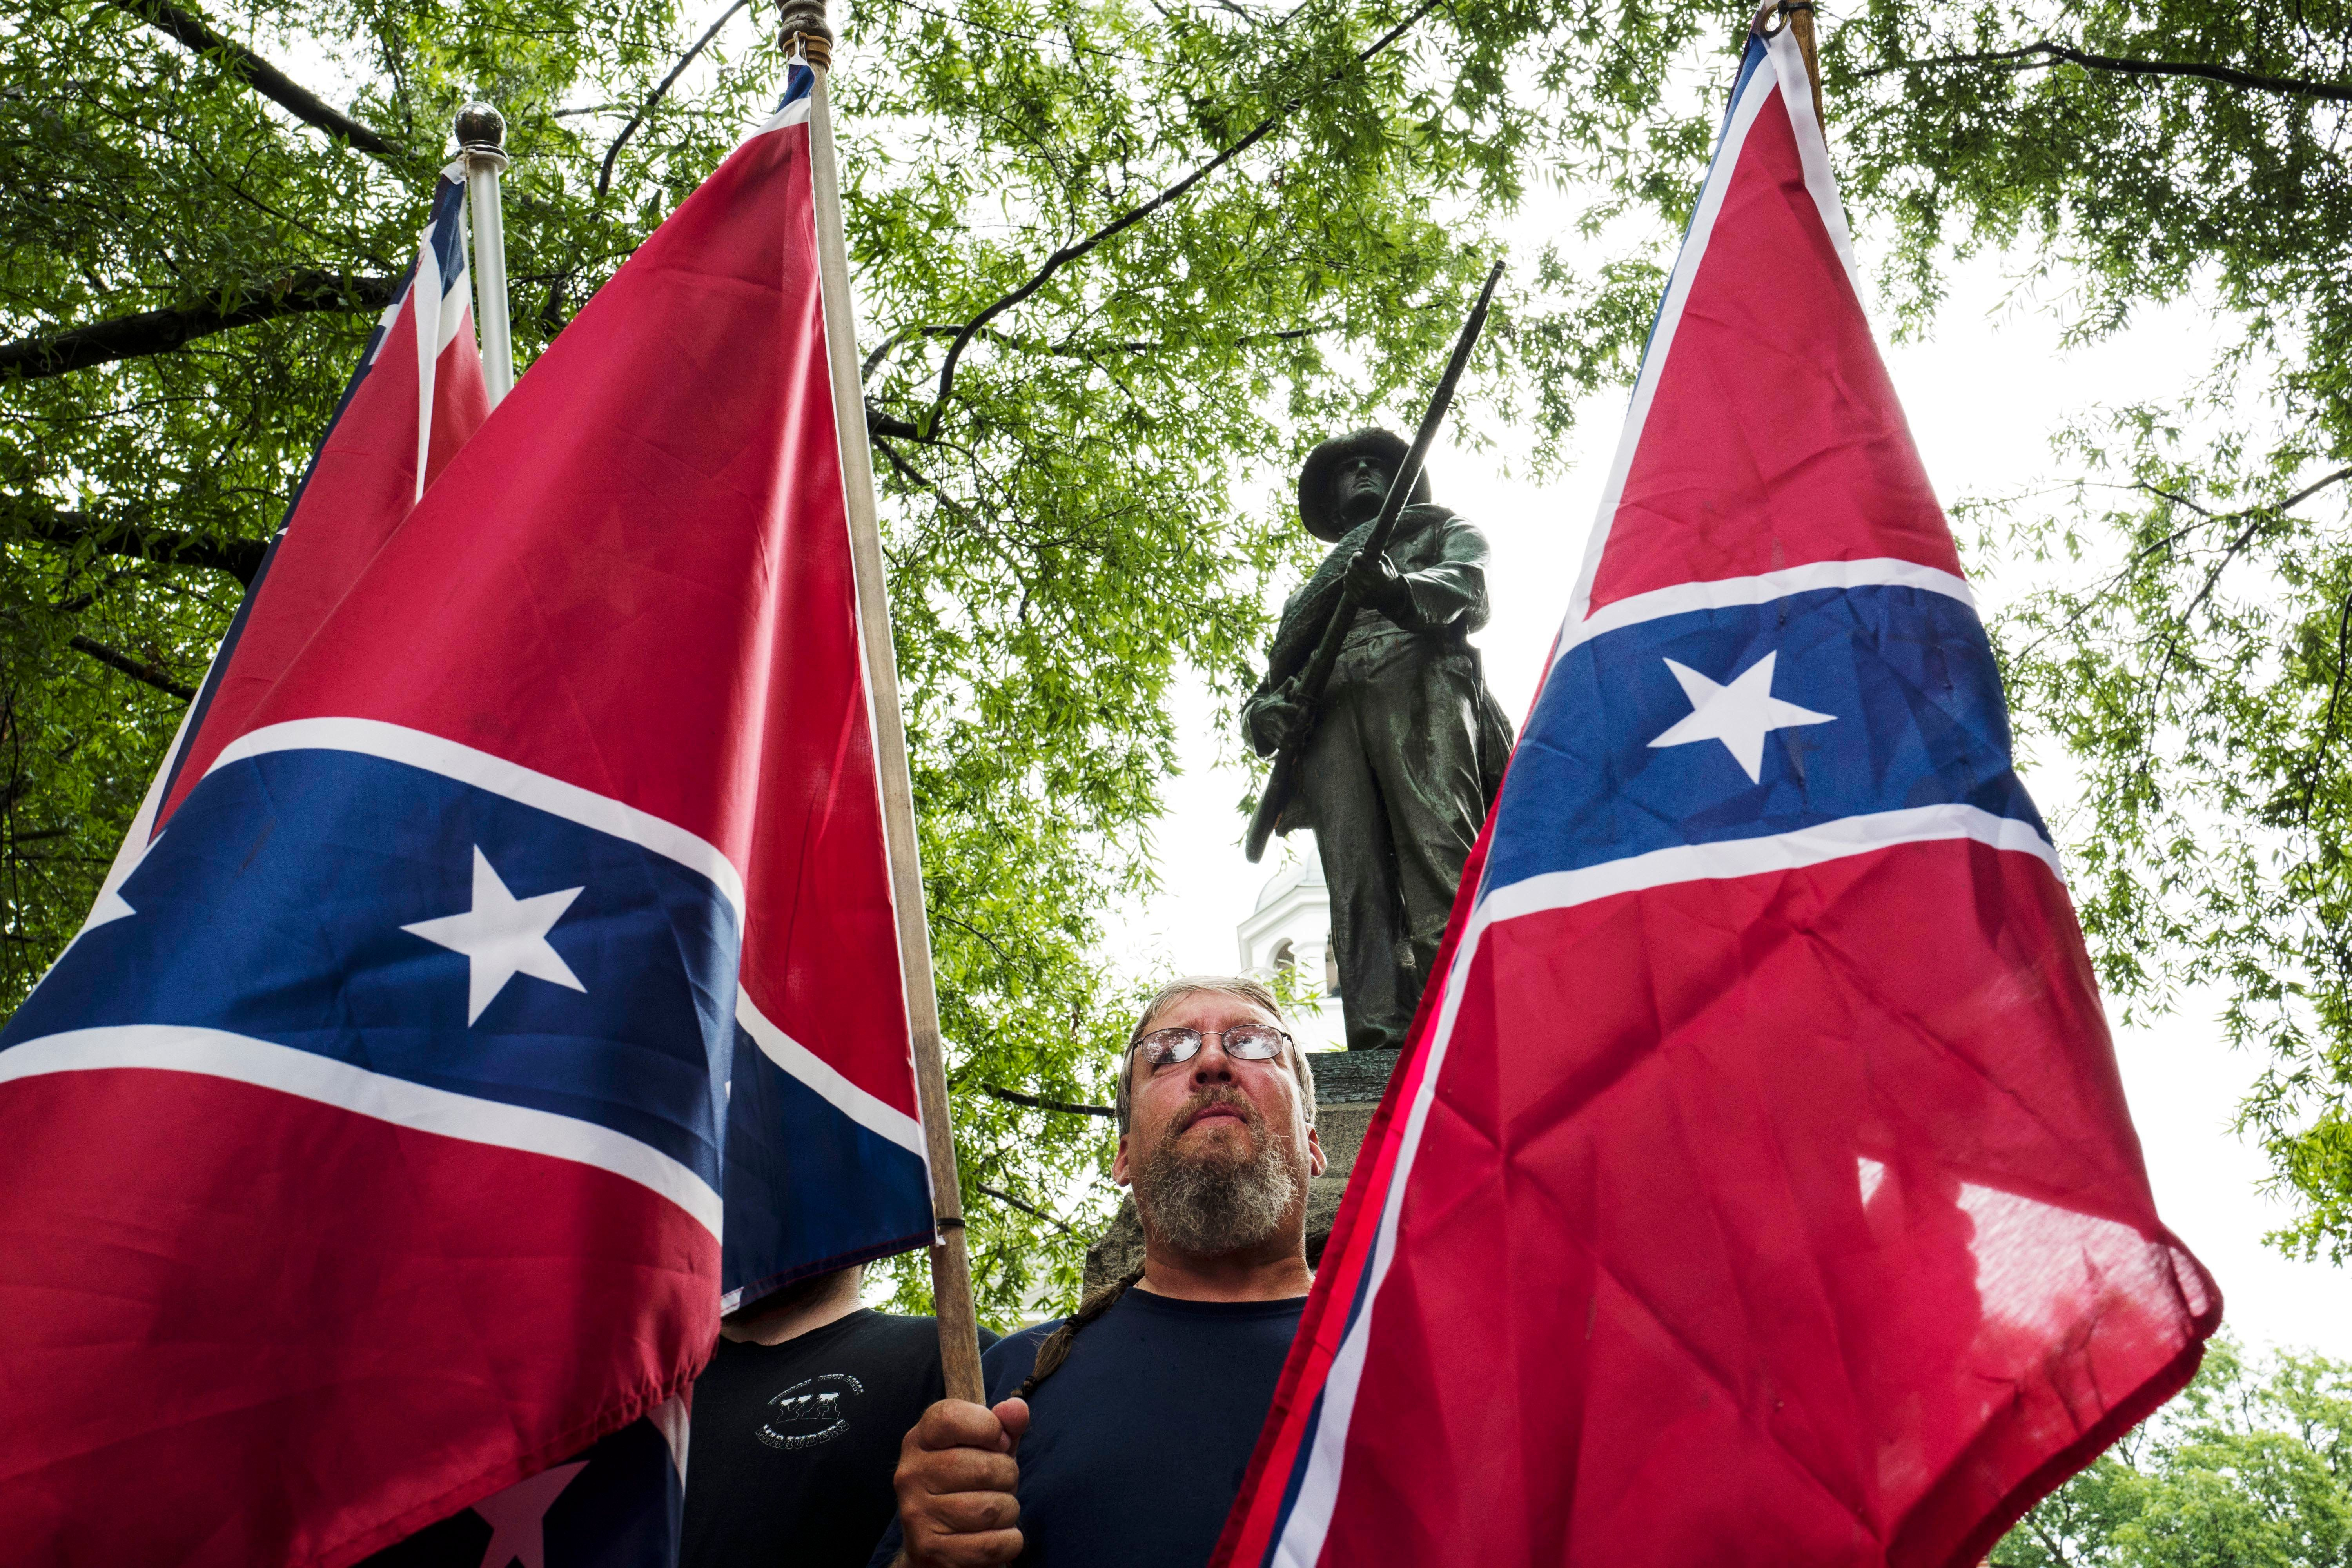 LEESBURG, VA    JULY 18:  Tom McGuigan, of Fauquier County, hoists Confederate flags in support of the Confederate Soldier Monument on the grounds of the Loudoun County Courthouse in Leesburg, Virginia, on Saturday, July 18, 2015.  Nearby, the Loudoun County Branch of the NAACP held a rally in remembrance of the slaves sold on the steps of the courthouse and the Union soldiers who died liberating Loudoun County. (Photo by Nikki Kahn/The Washington Post via Getty Images)